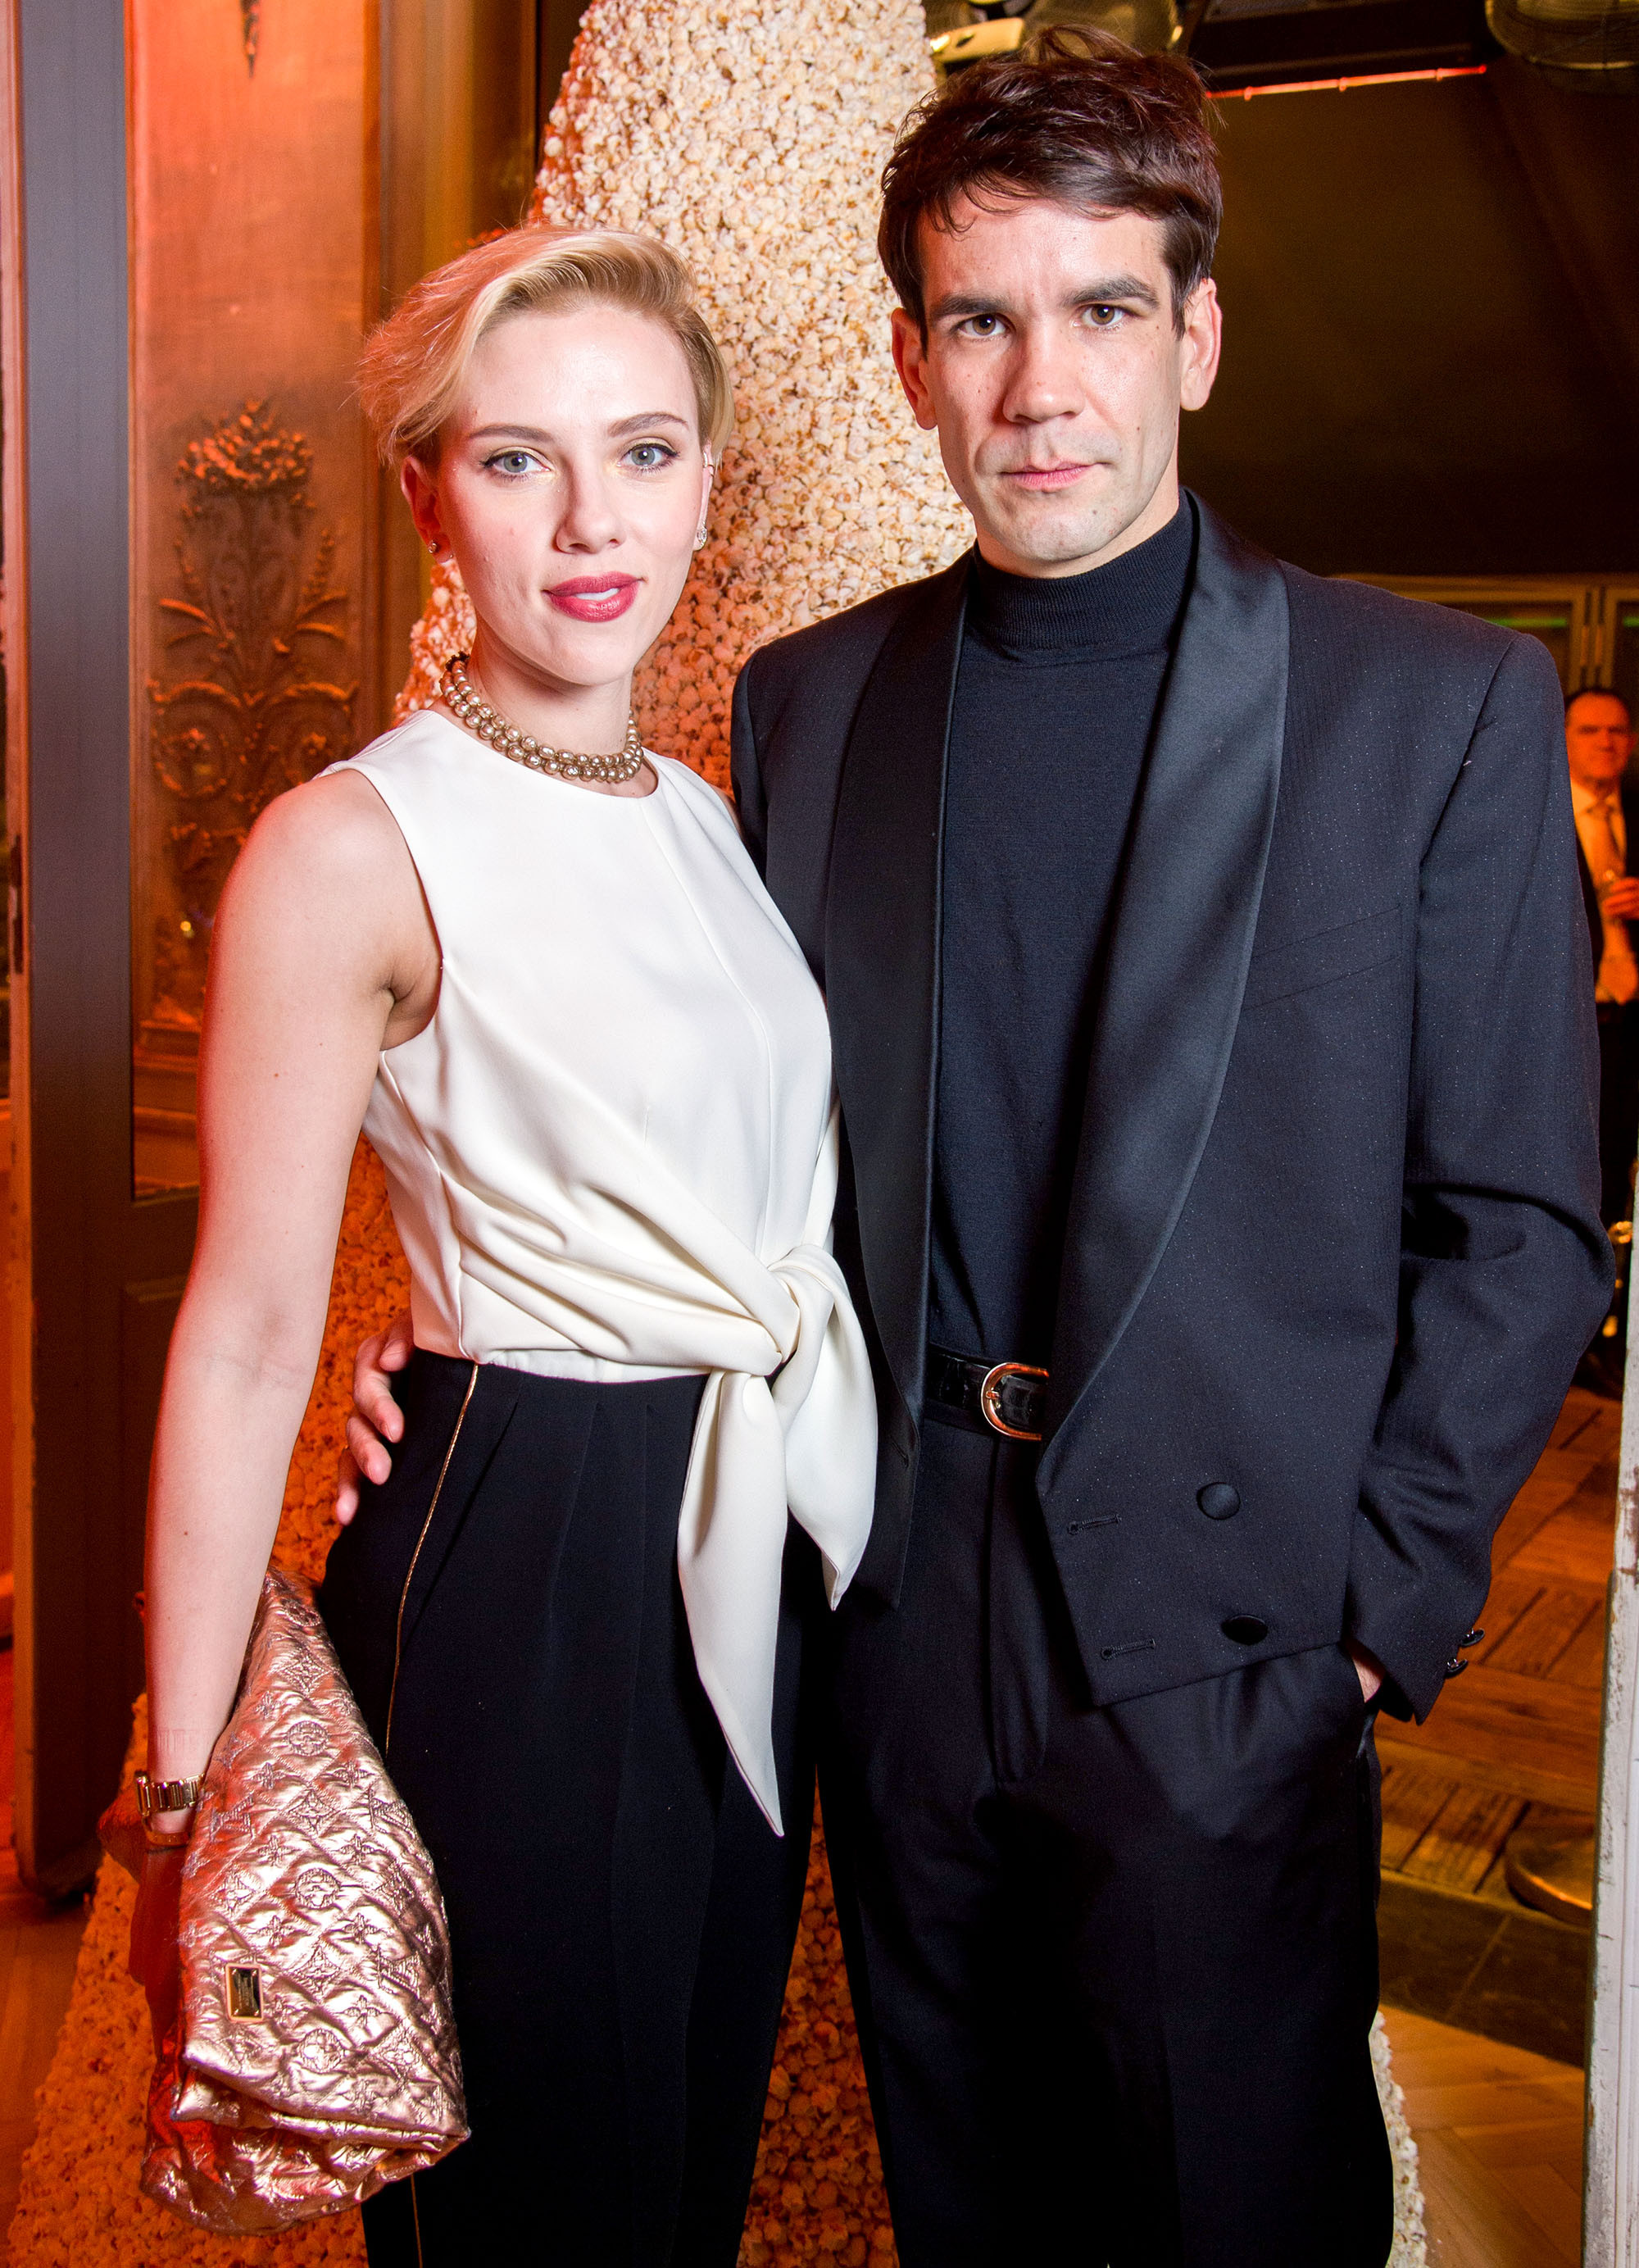 PARIS, FRANCE - DECEMBER 16:  Scarlett Johansson and Romain Dauriac attend the Yummy Pop Grand Opening Party at Theatre du Gymnase on December 16, 2016 in Paris, France.  (Photo by Pascal Le Segretain/Getty Images for Yummy Pop)